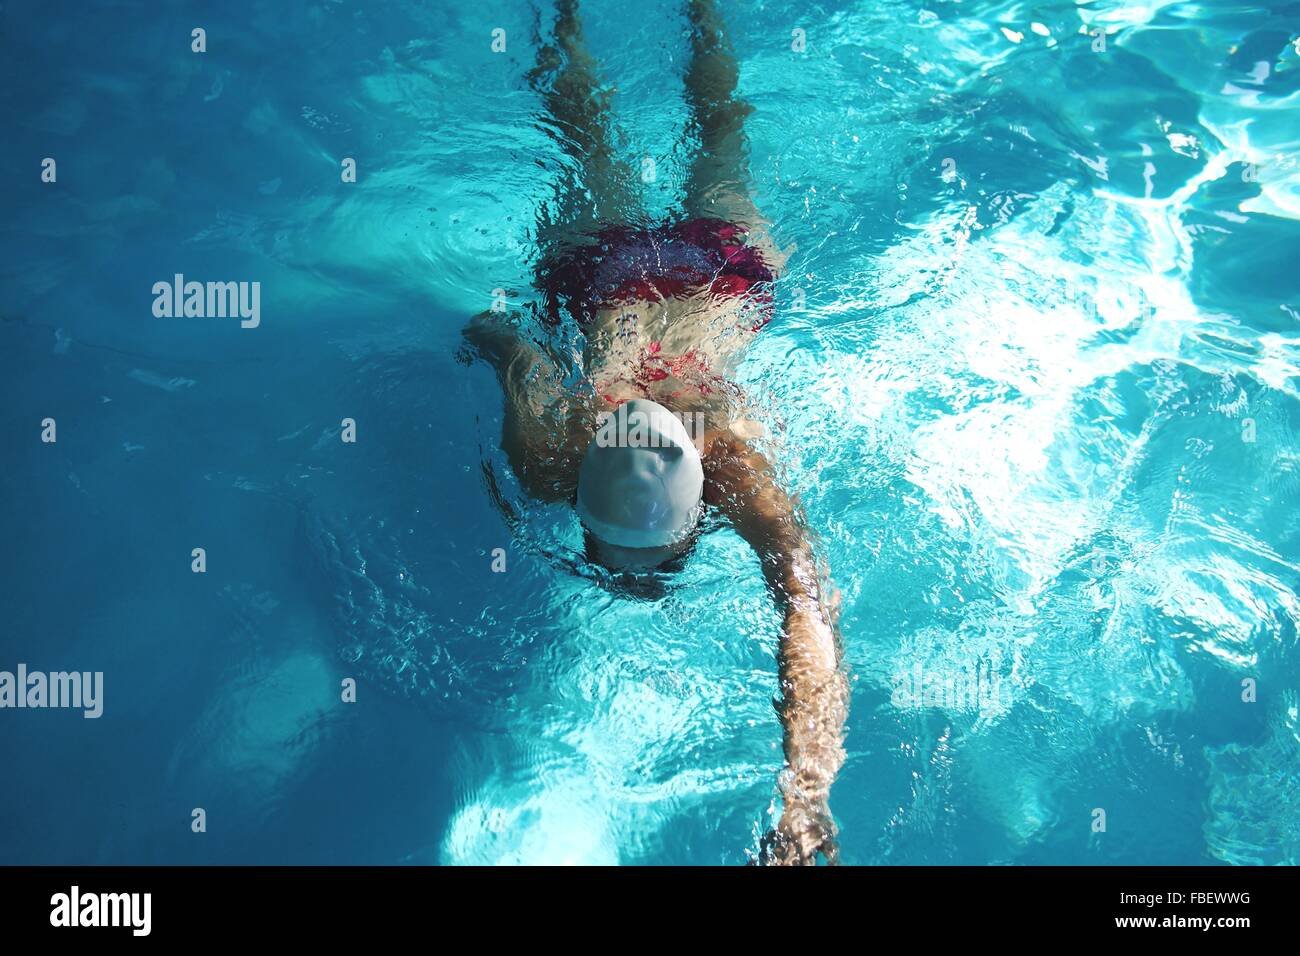 High Angle View Of Woman In Swimming Pool - Stock Image